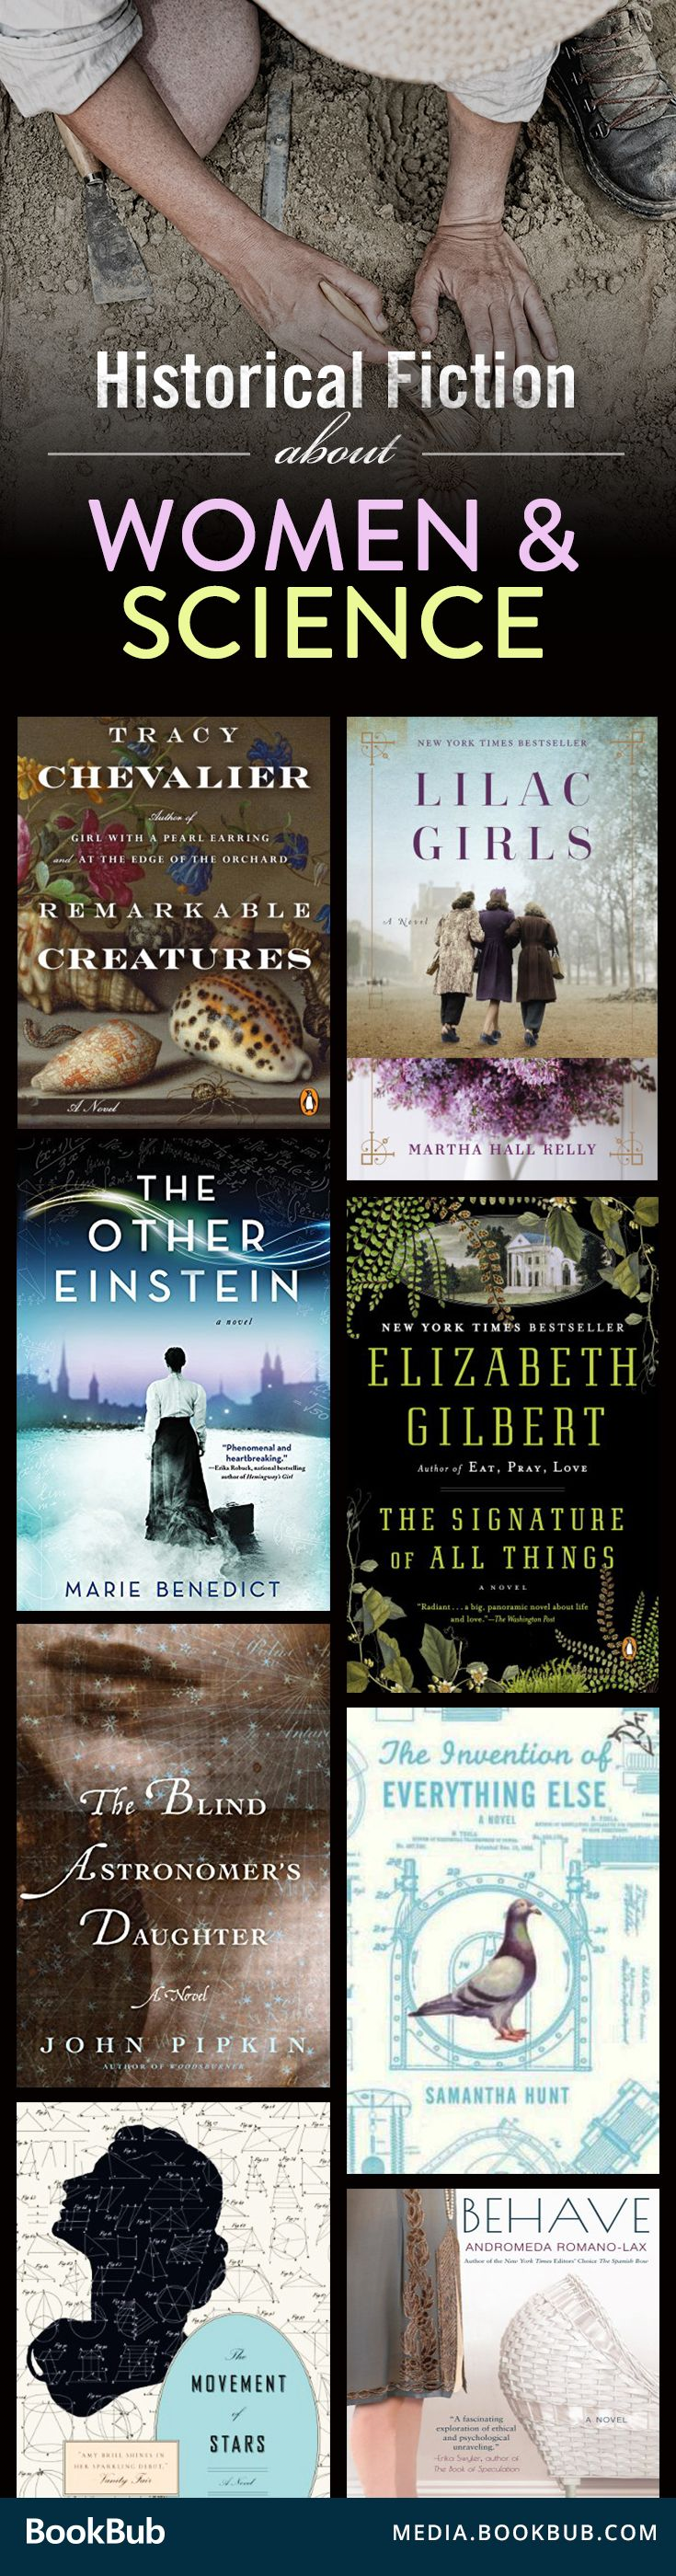 These 8 historical fiction titles are must-read inspiring books for women.